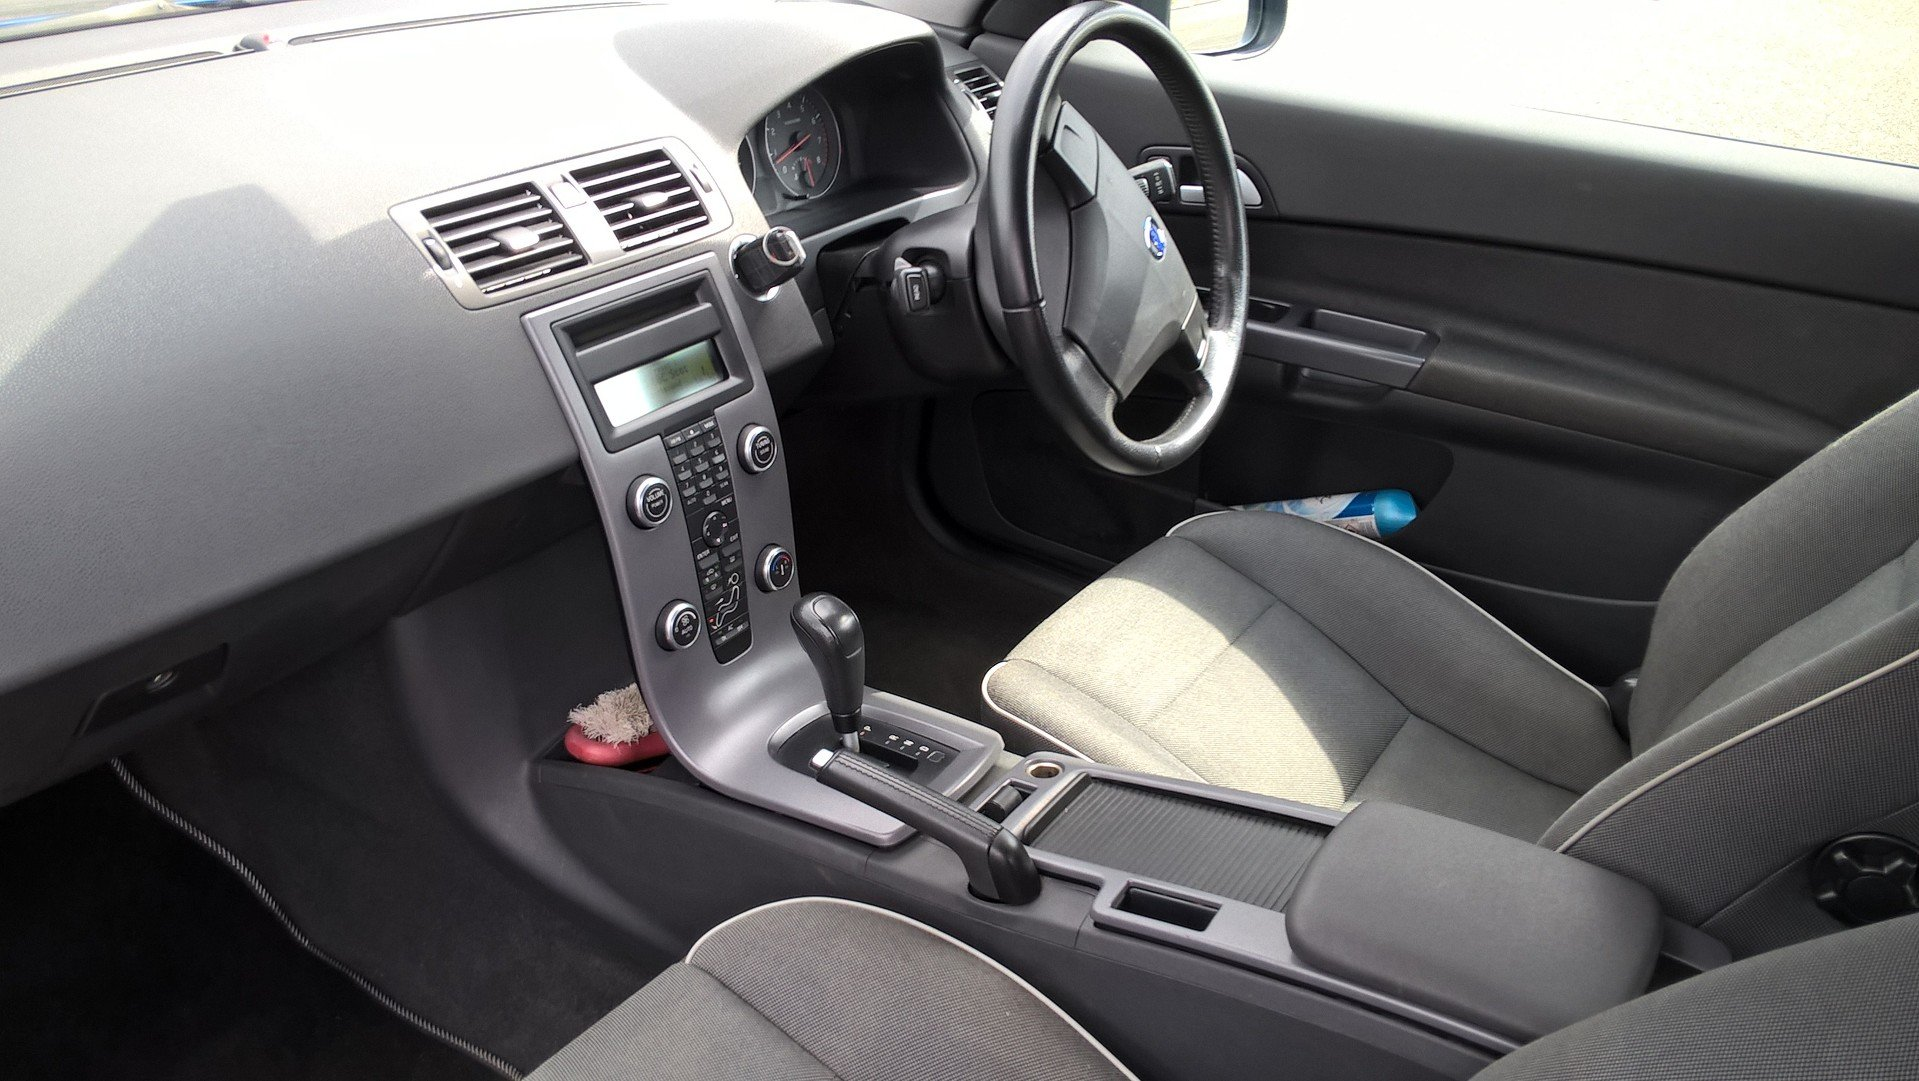 2007 volvo c30 s 2.4 automatic For Sale (picture 5 of 6)